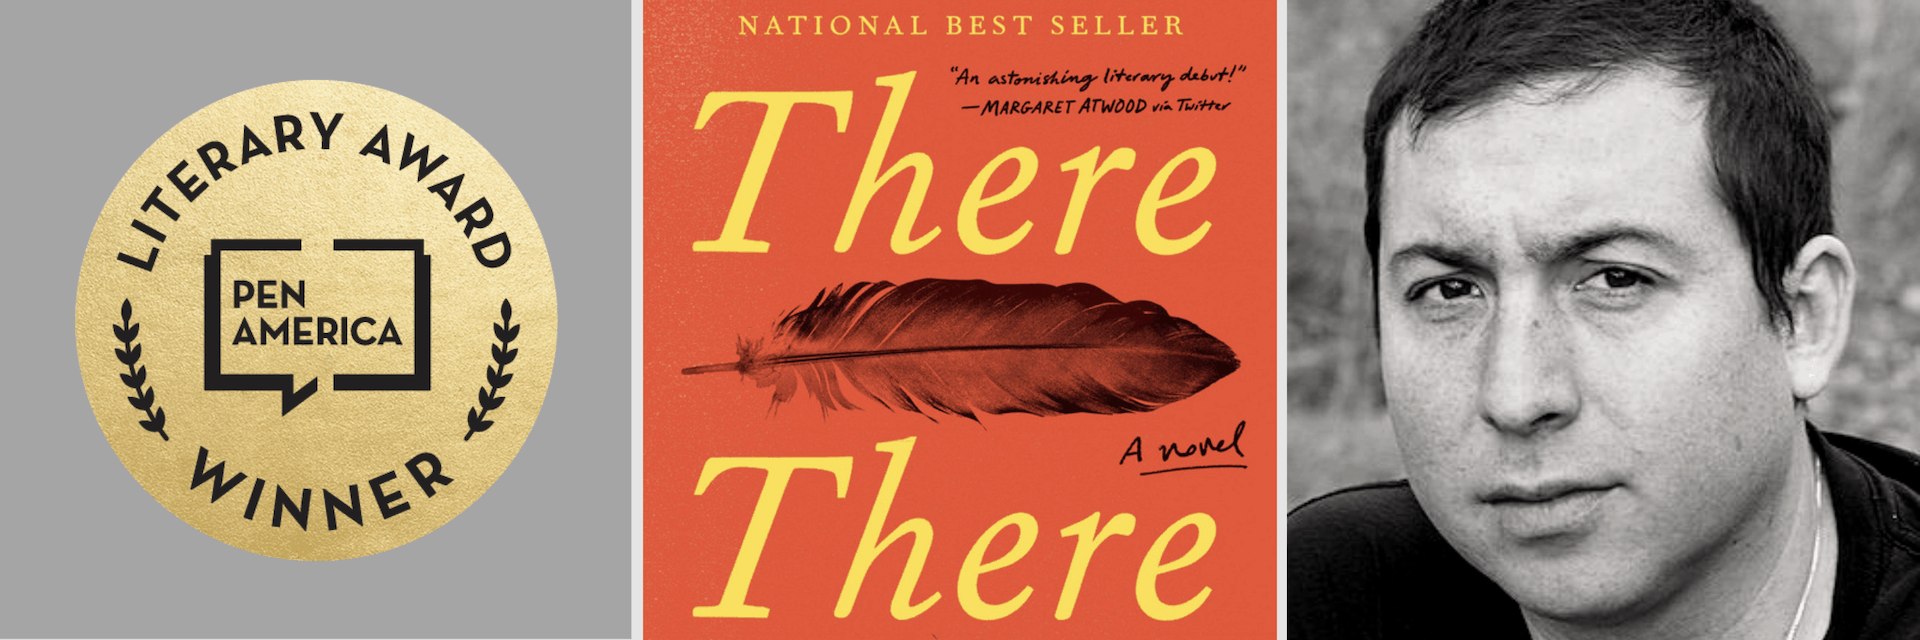 2019 PEN/Hemingway Award winner There There by Tommy Orange